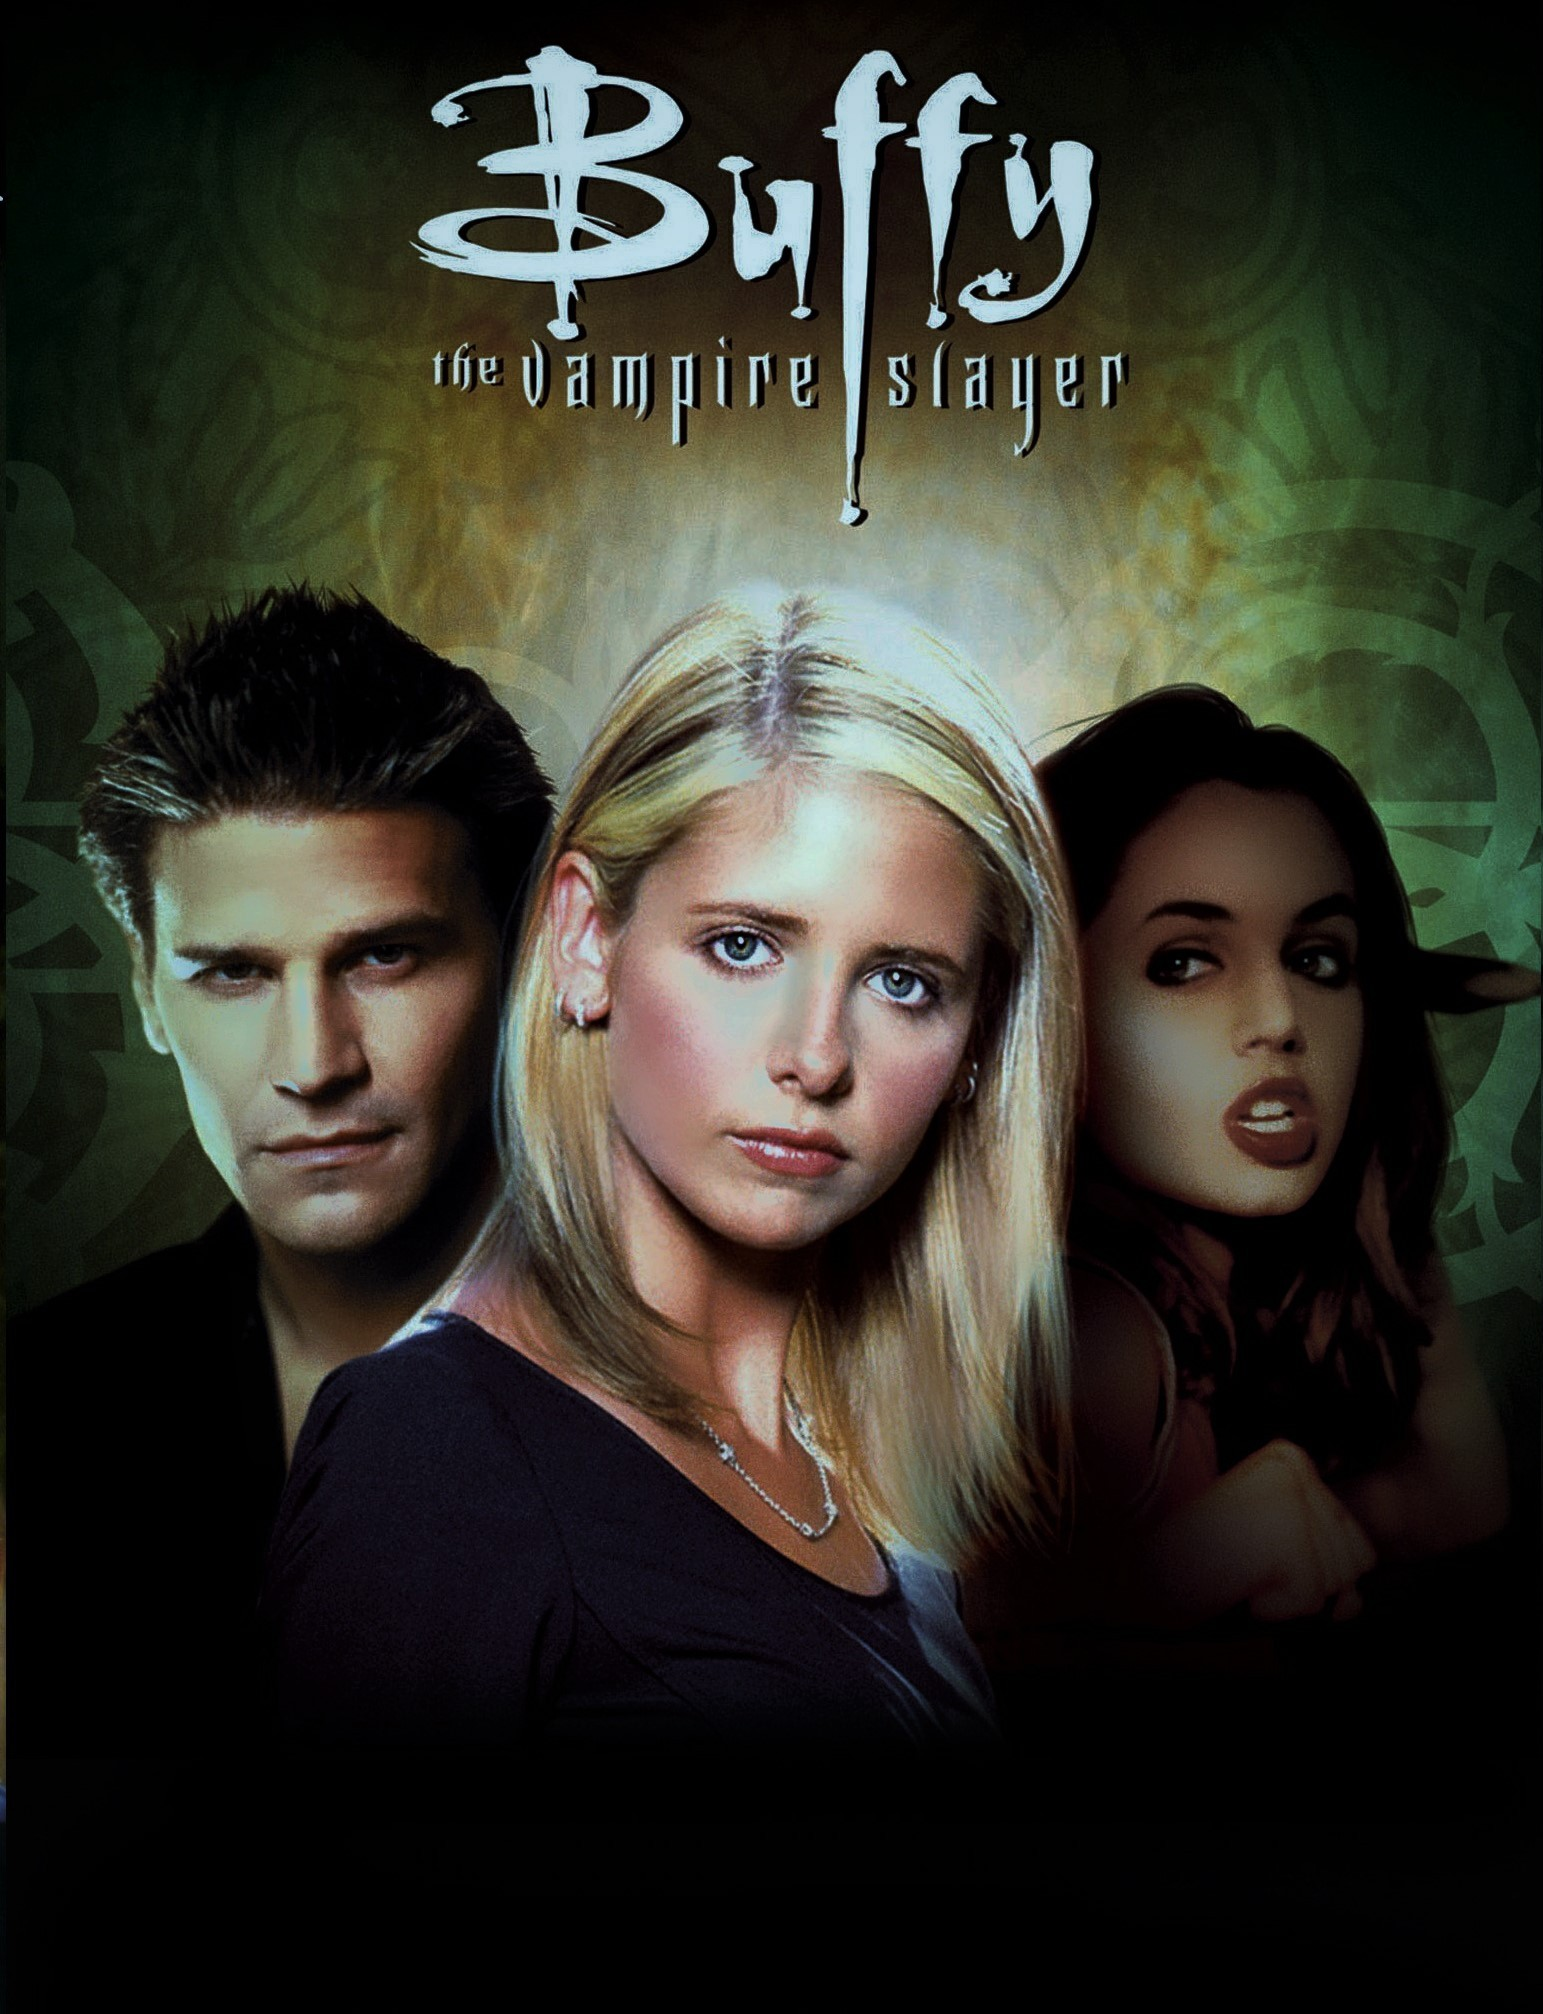 an analysis of buffy the vampire slayer a television show She is the slayer sarah michelle gellar stars as buffy summers, the chosen one, the one girl in all the world with the strength and skill to fight the vampires  show reviews by tvcom users .